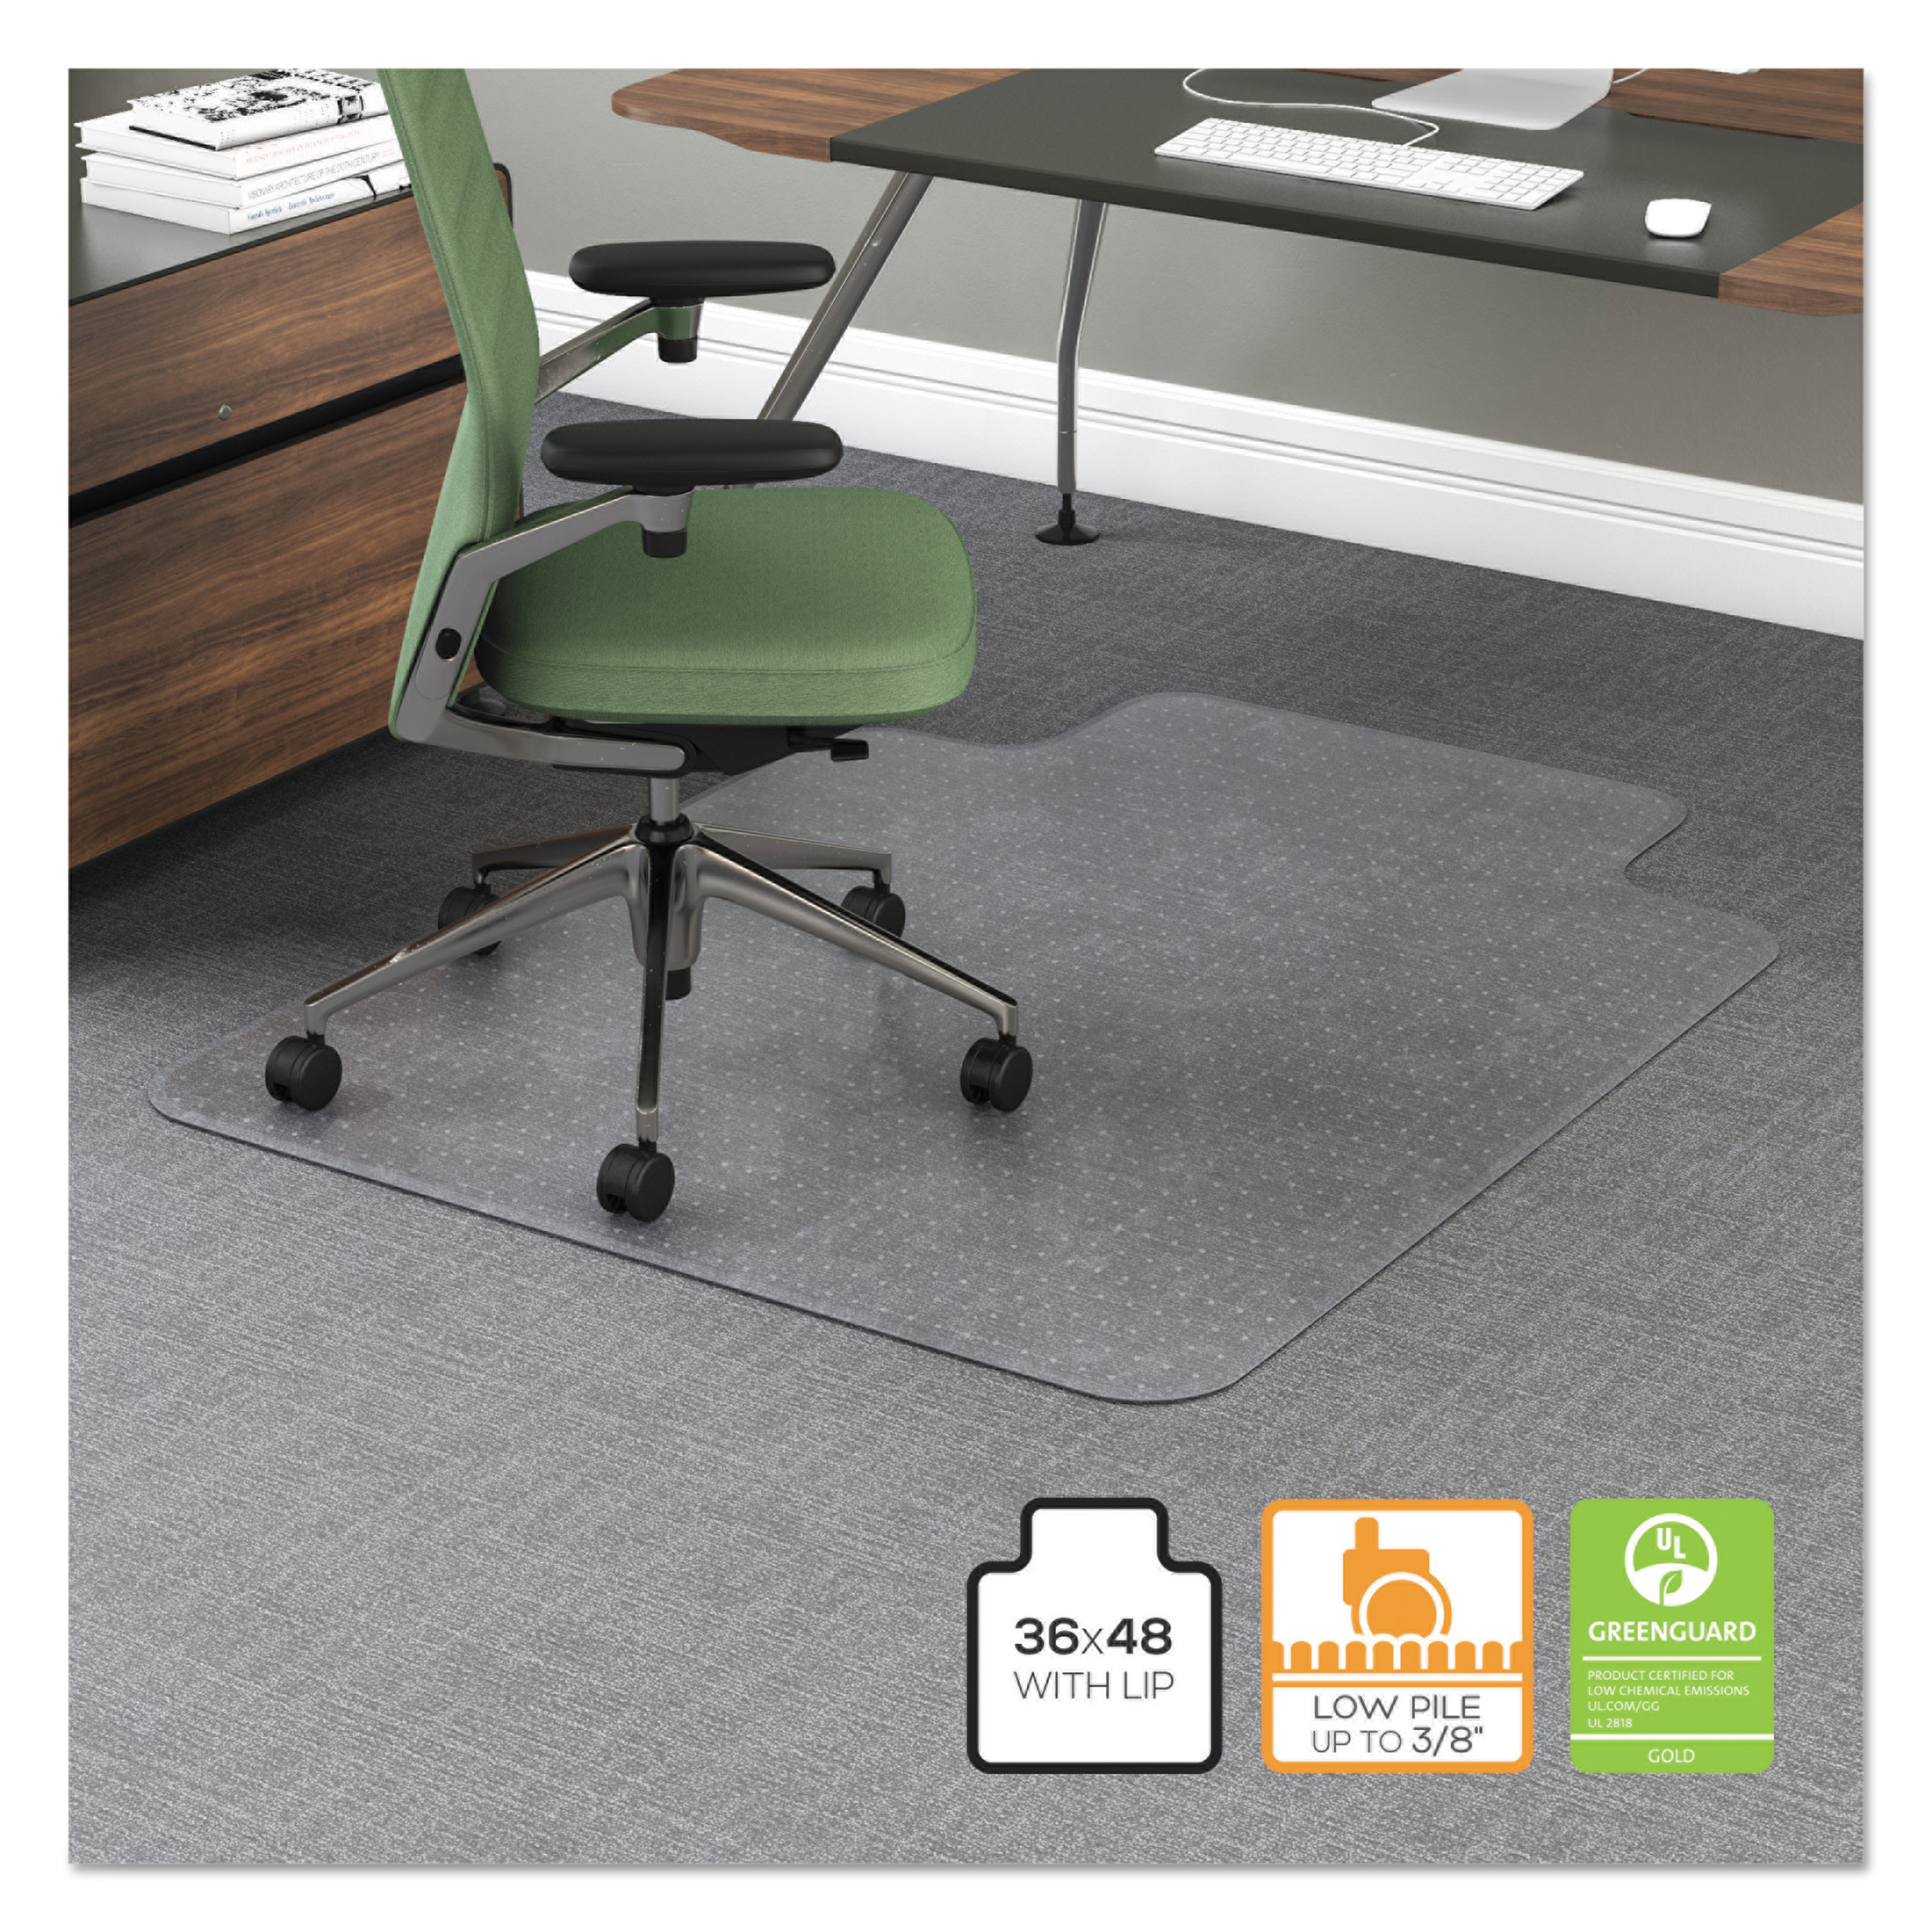 Office Impression 36 X 48 Chair Mat For Carpet Rectangular With Lip